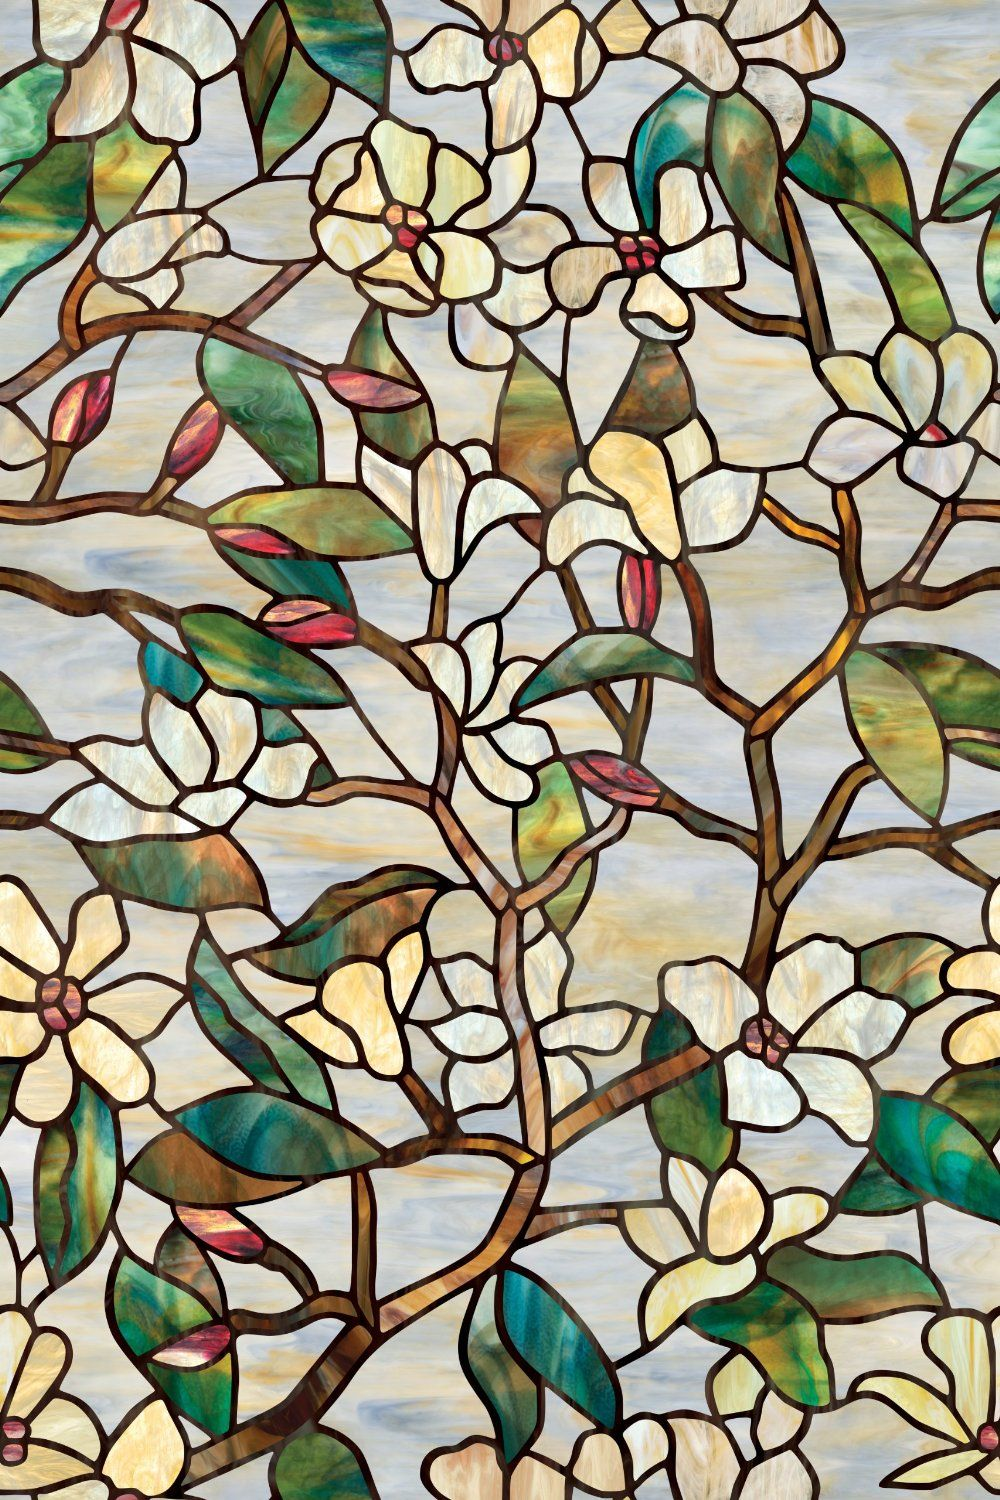 Amazoncom Artscape Inch By Inch Summer Magnolia - Stained glass window stickers amazon